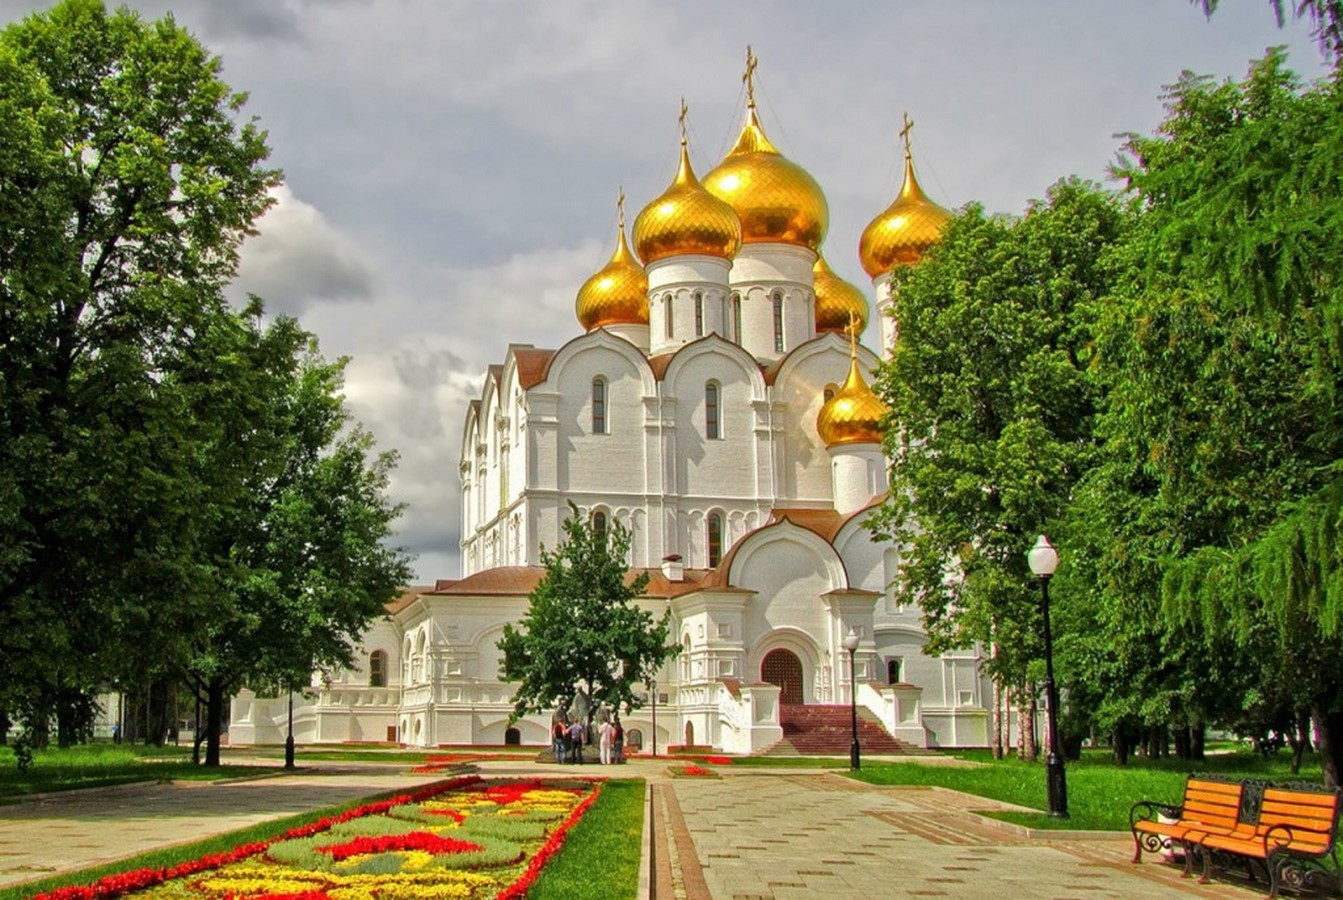 10 Reasons why Architects should visit Russia - Sheet8